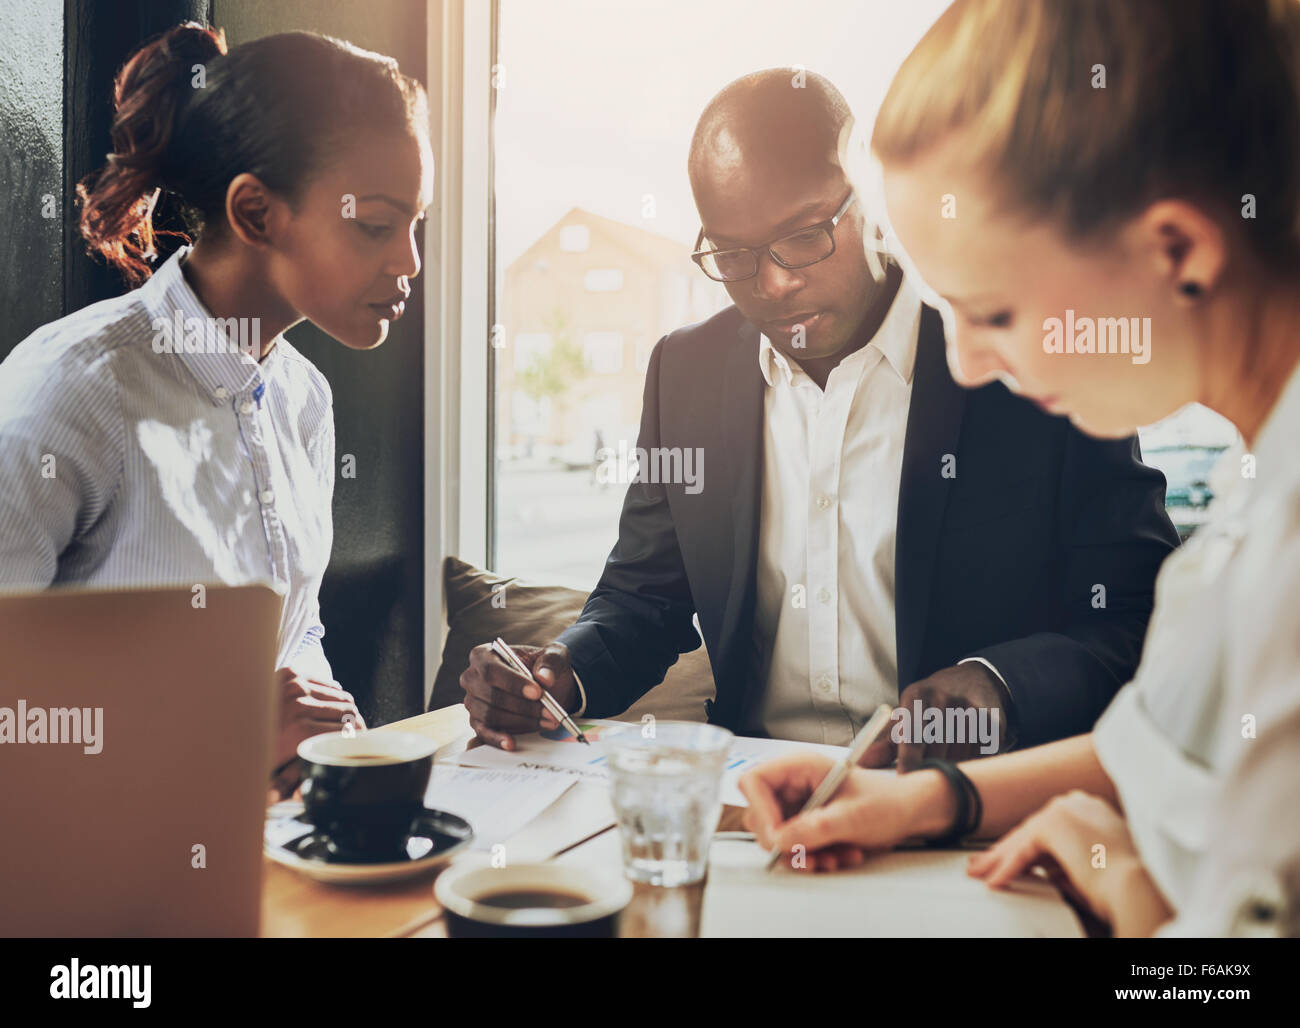 Serious group of business people working, multi ethnic group, business, entrepreneur, start up concept - Stock Image